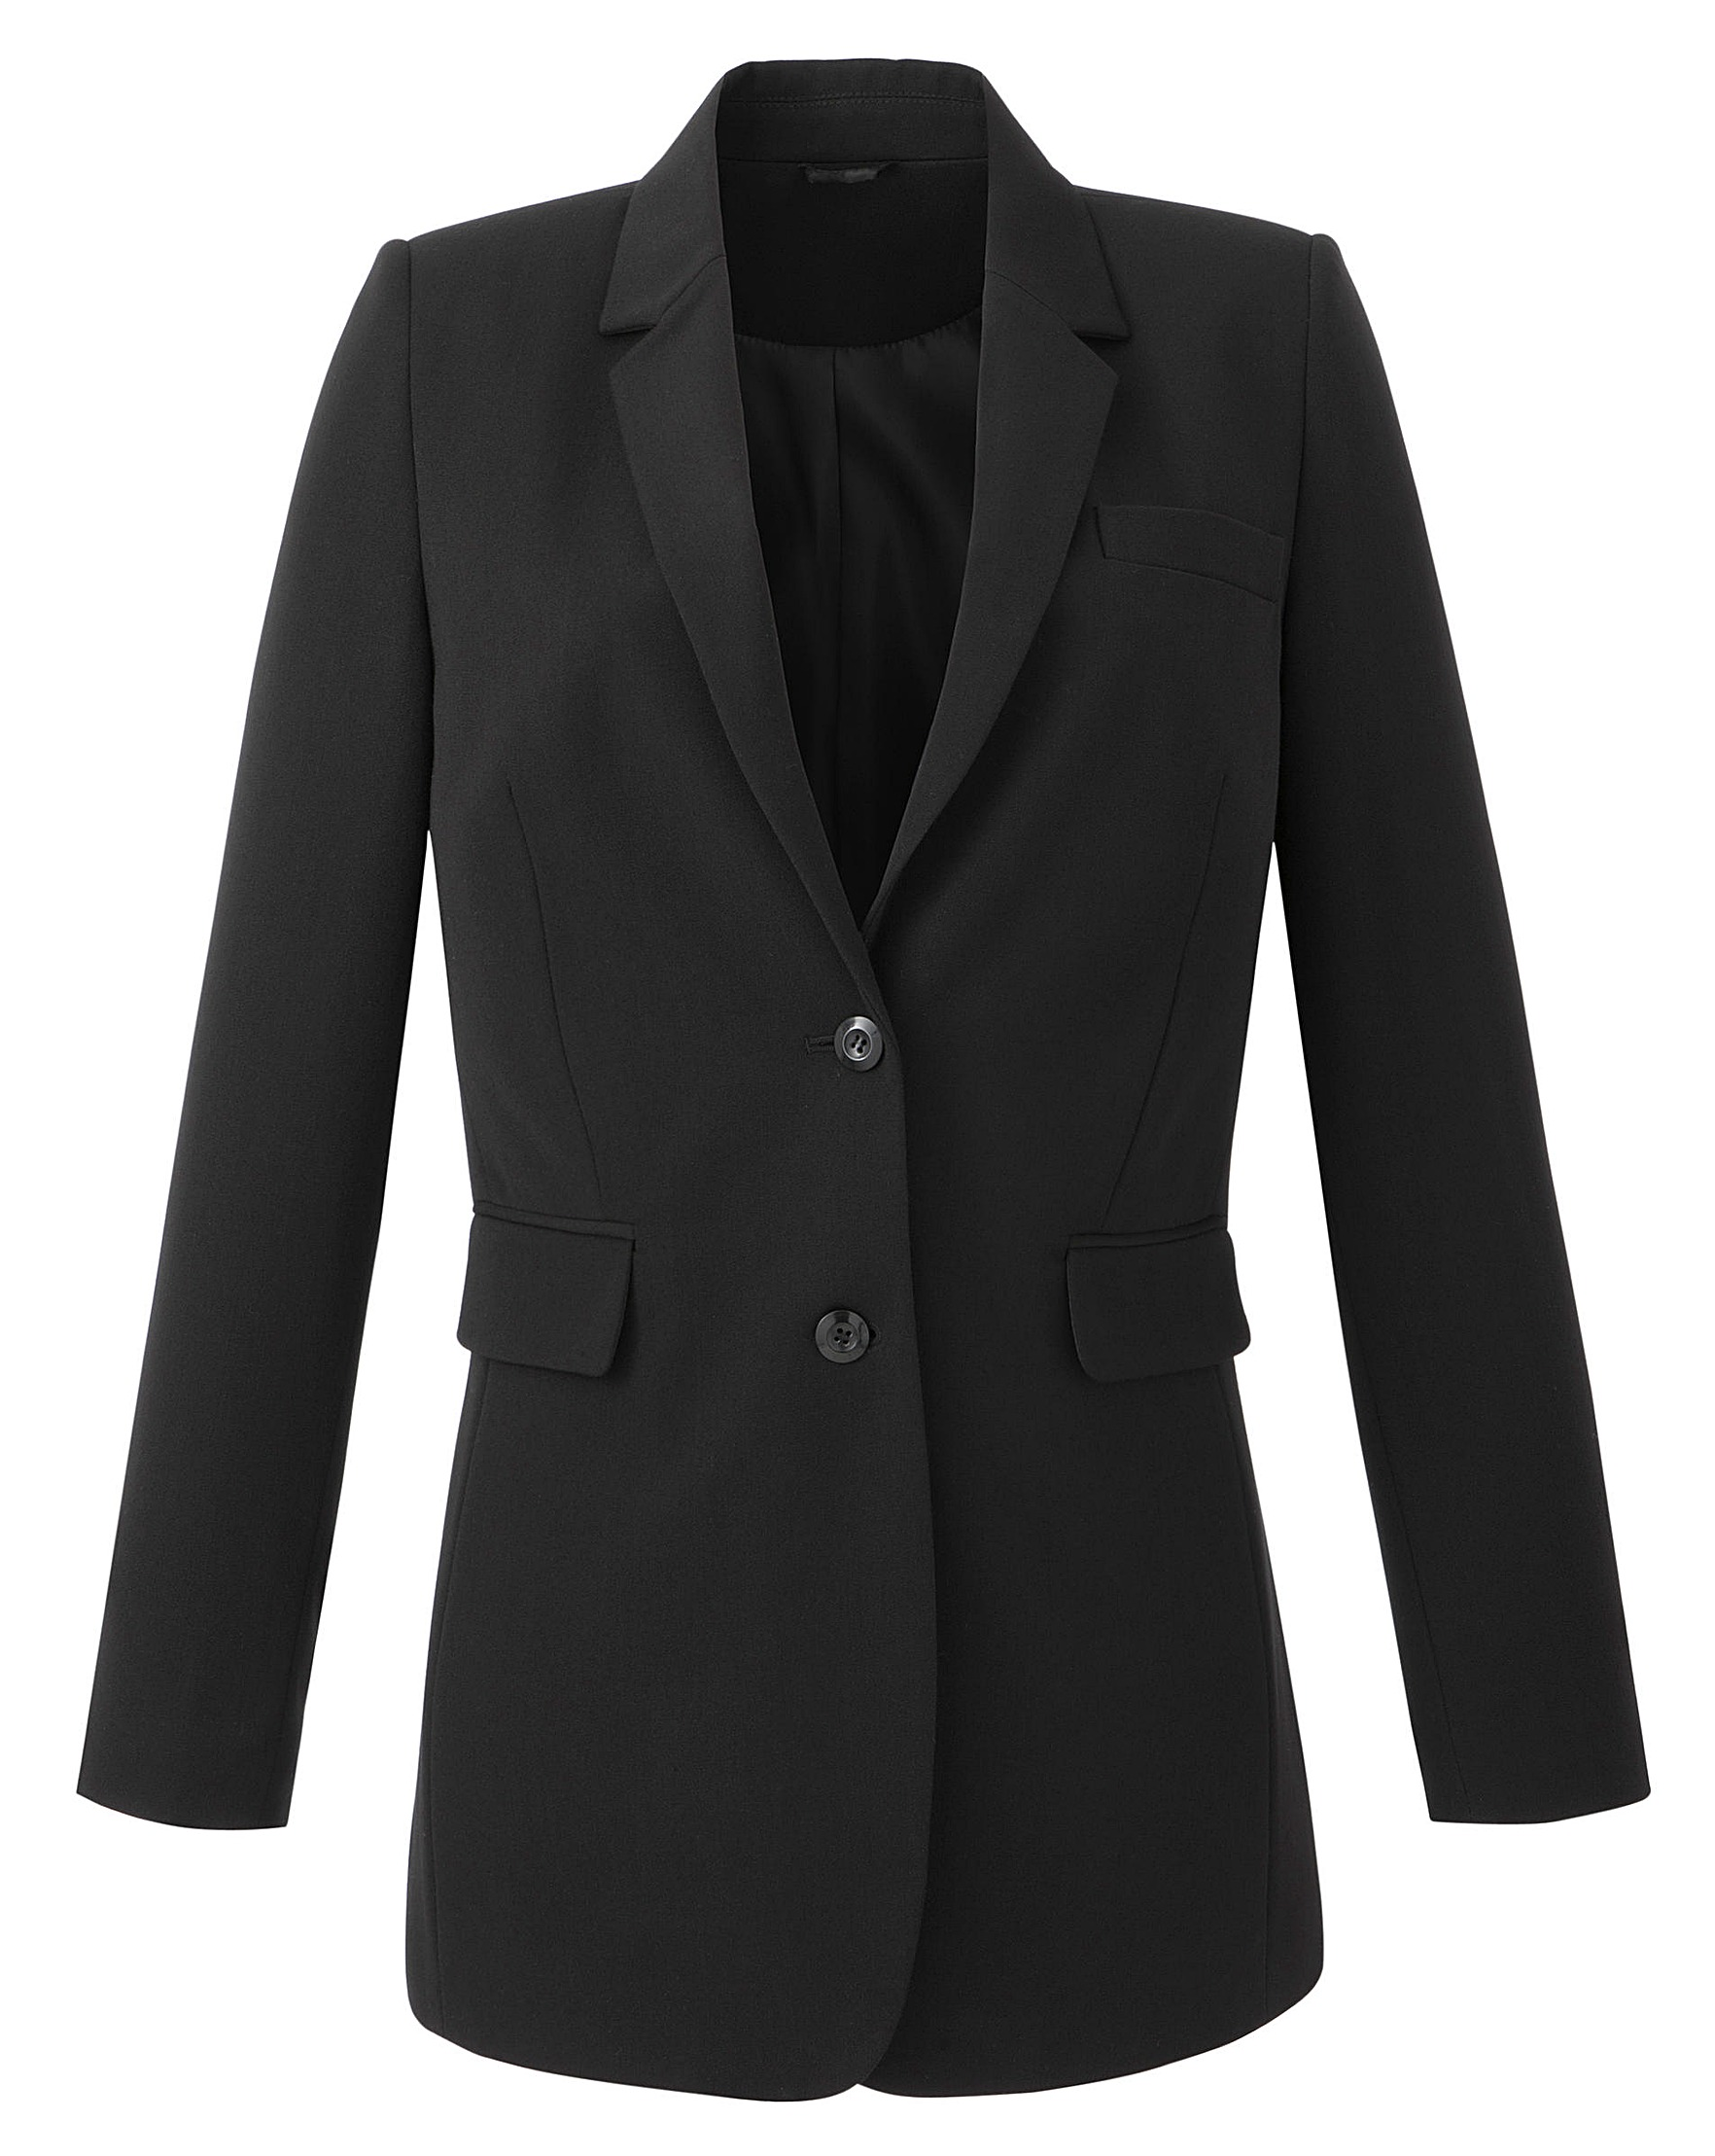 Tall Mix & Match Blazer Length 30in | Simply Be